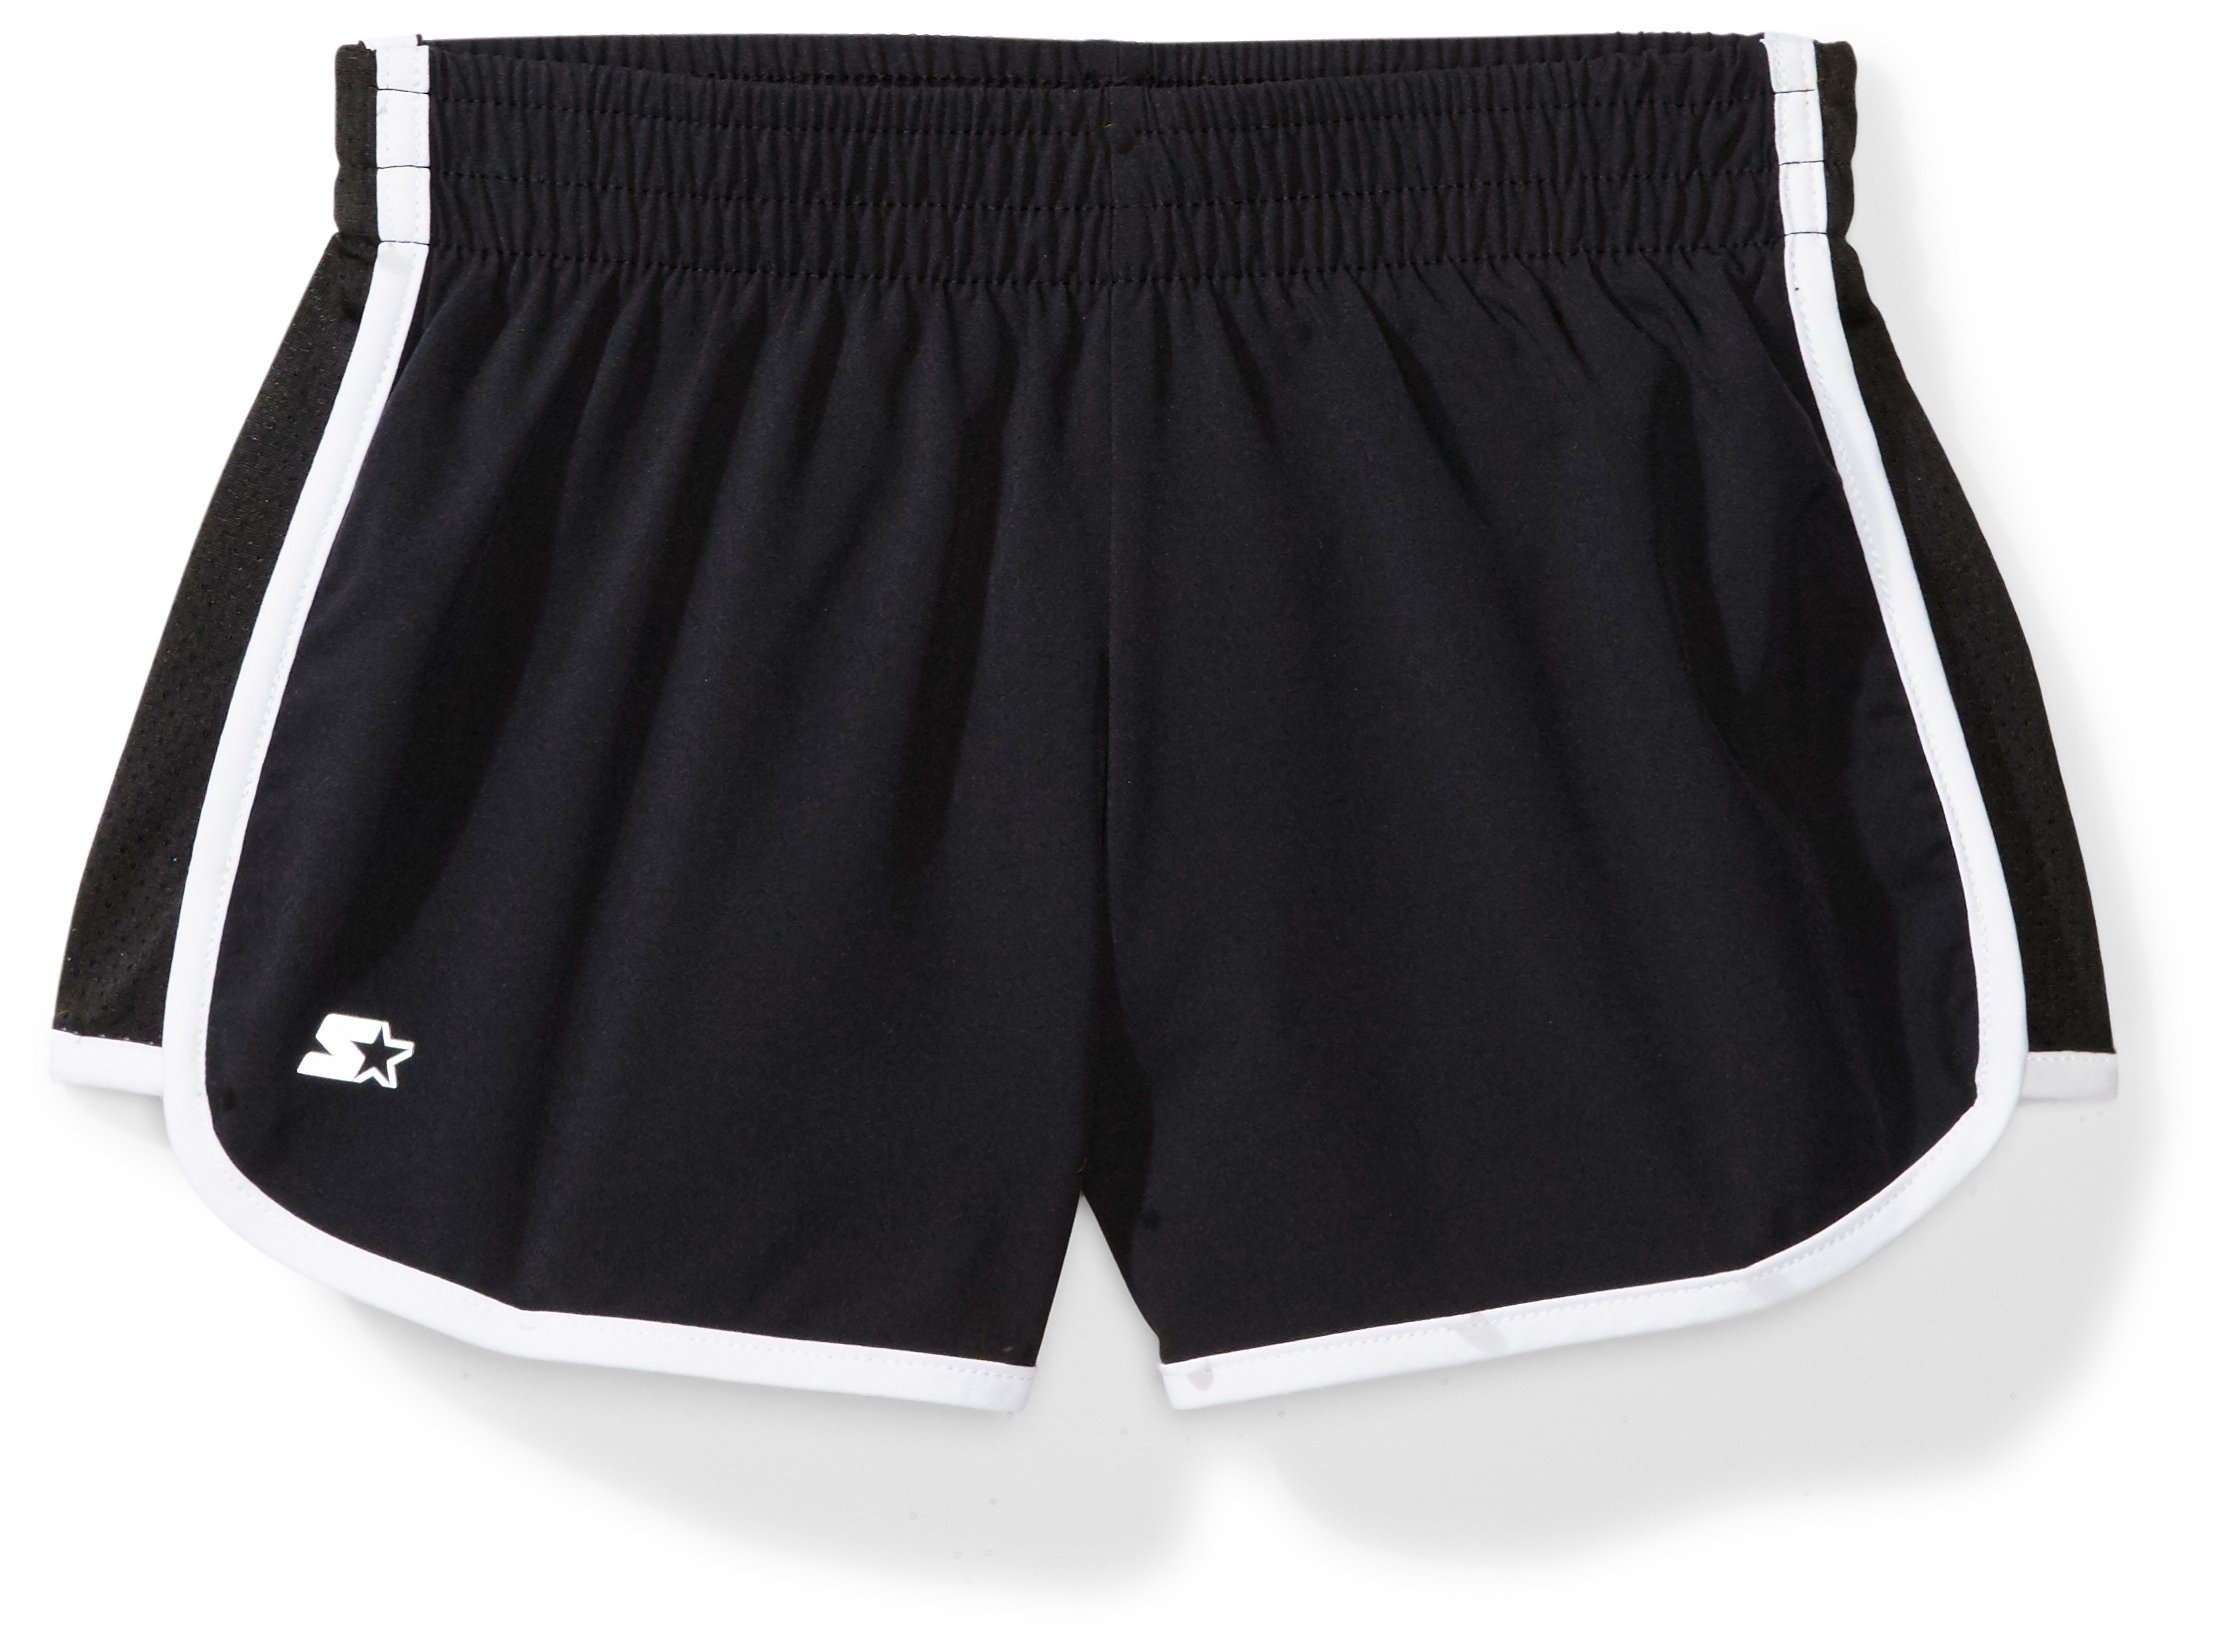 Starter Girls' 3'' Stretch Running Short, Amazon Exclusive, Black, S (6/6X) by Starter